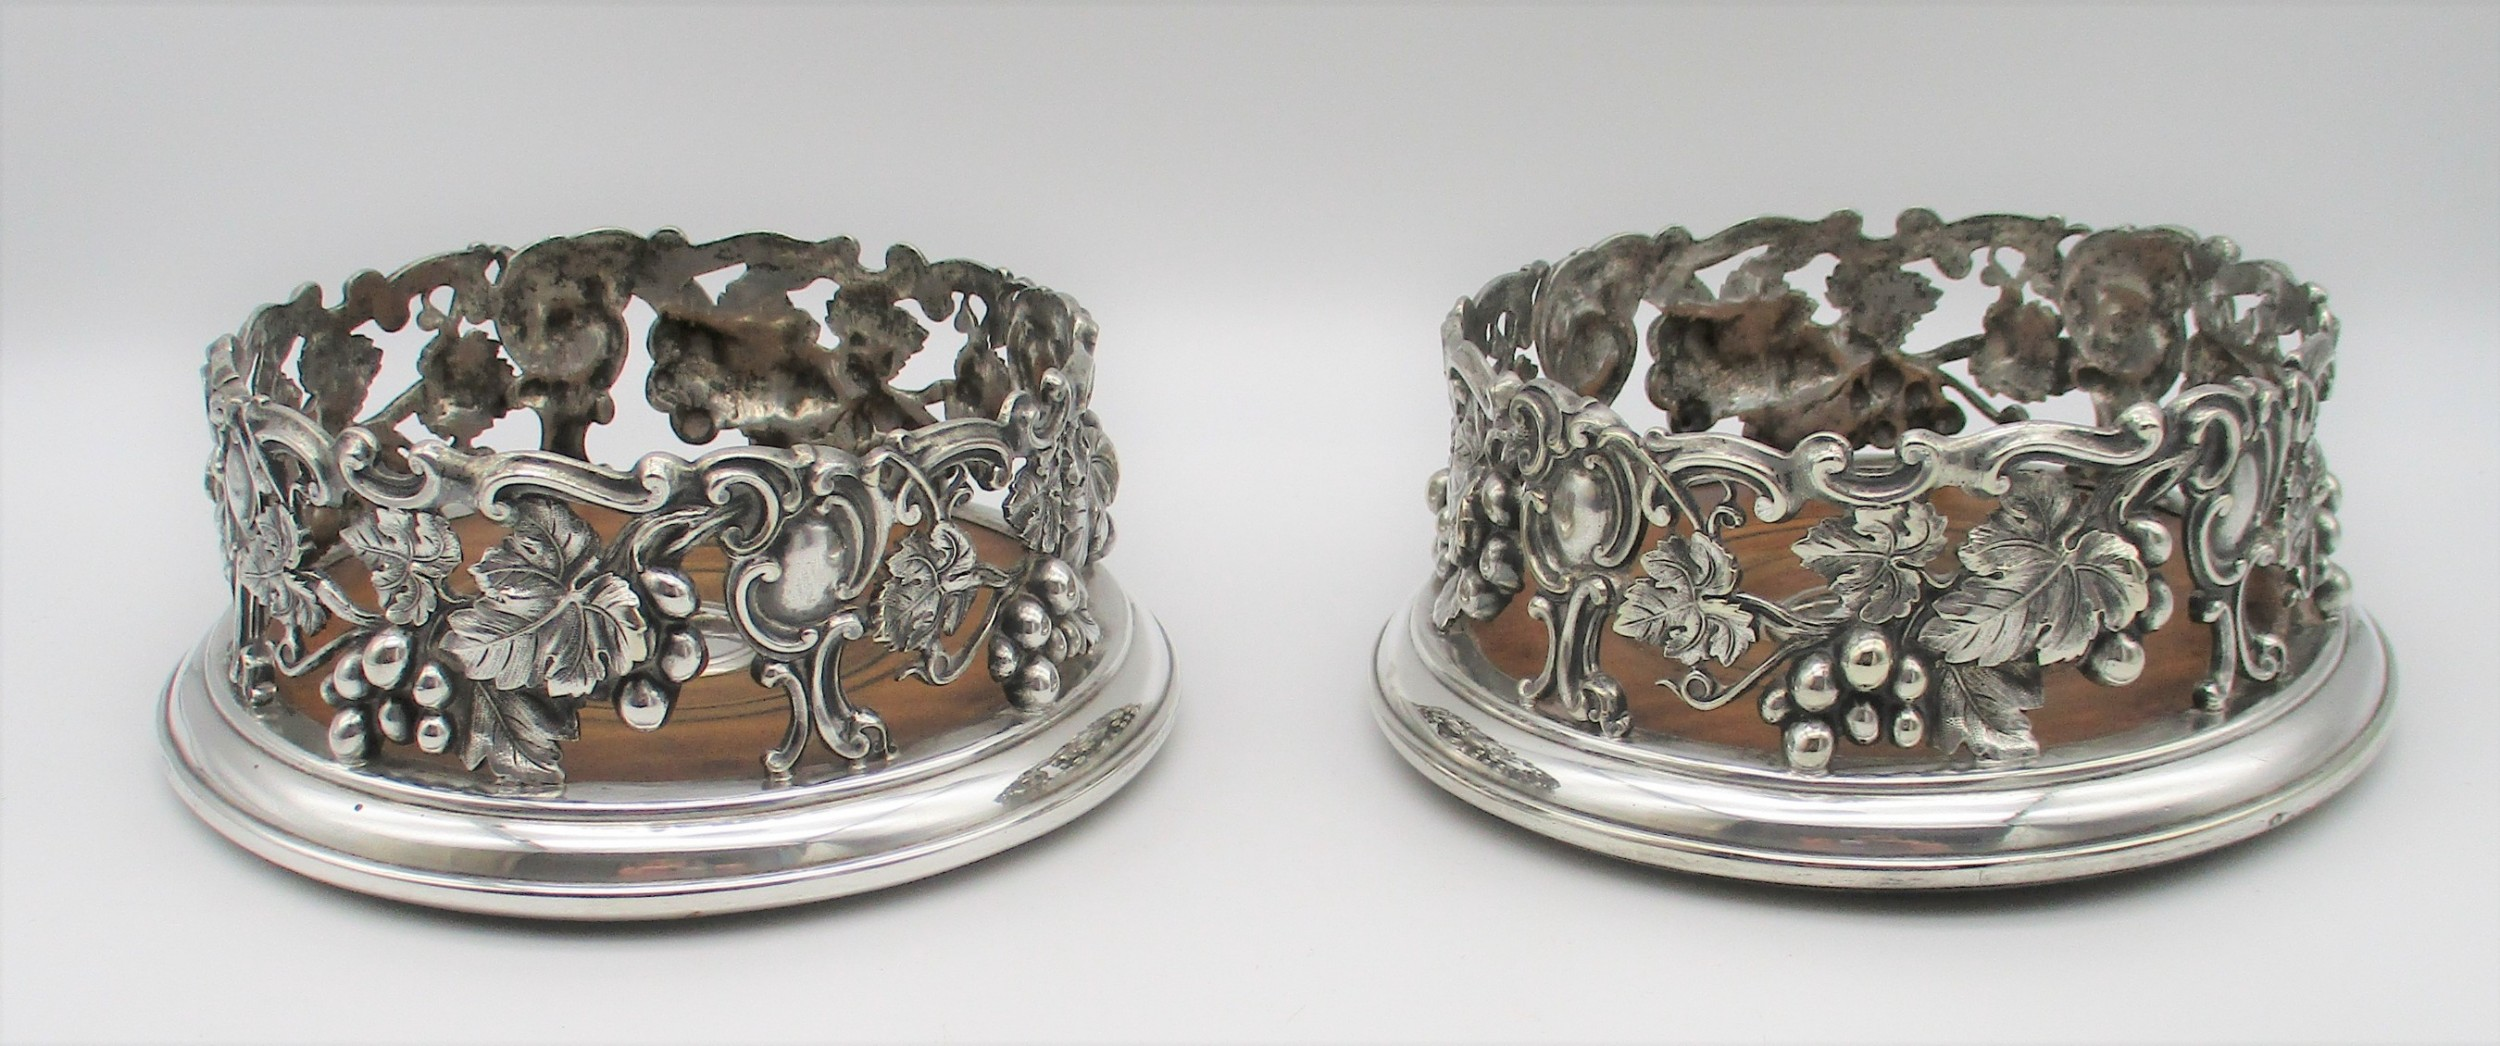 stunning pair of silver plated wine bottle coasters by elkington mason c1850